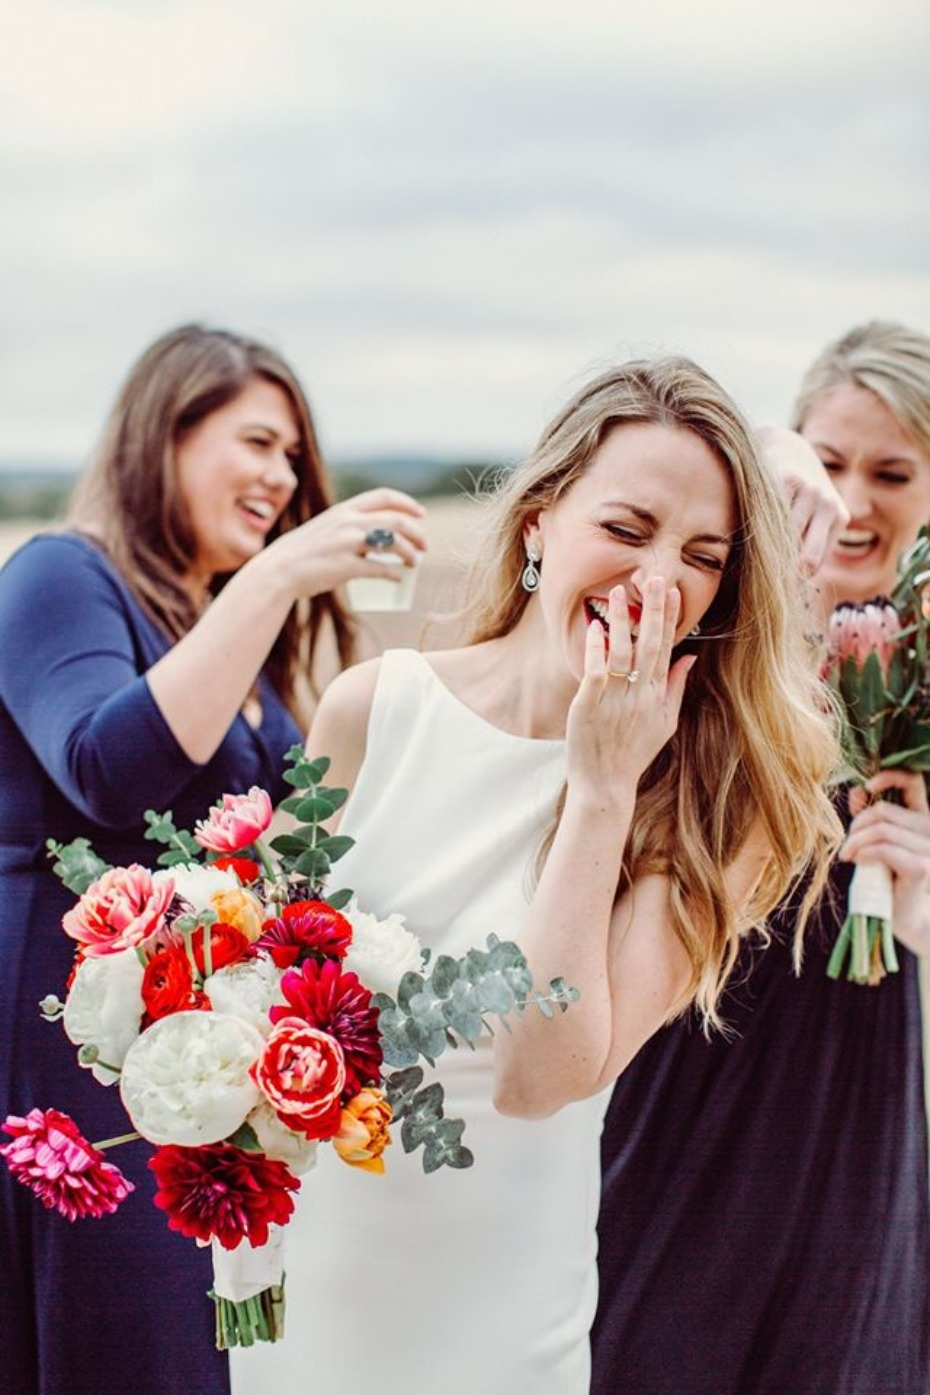 DIY your wedding bouquet with FiftyFlowers